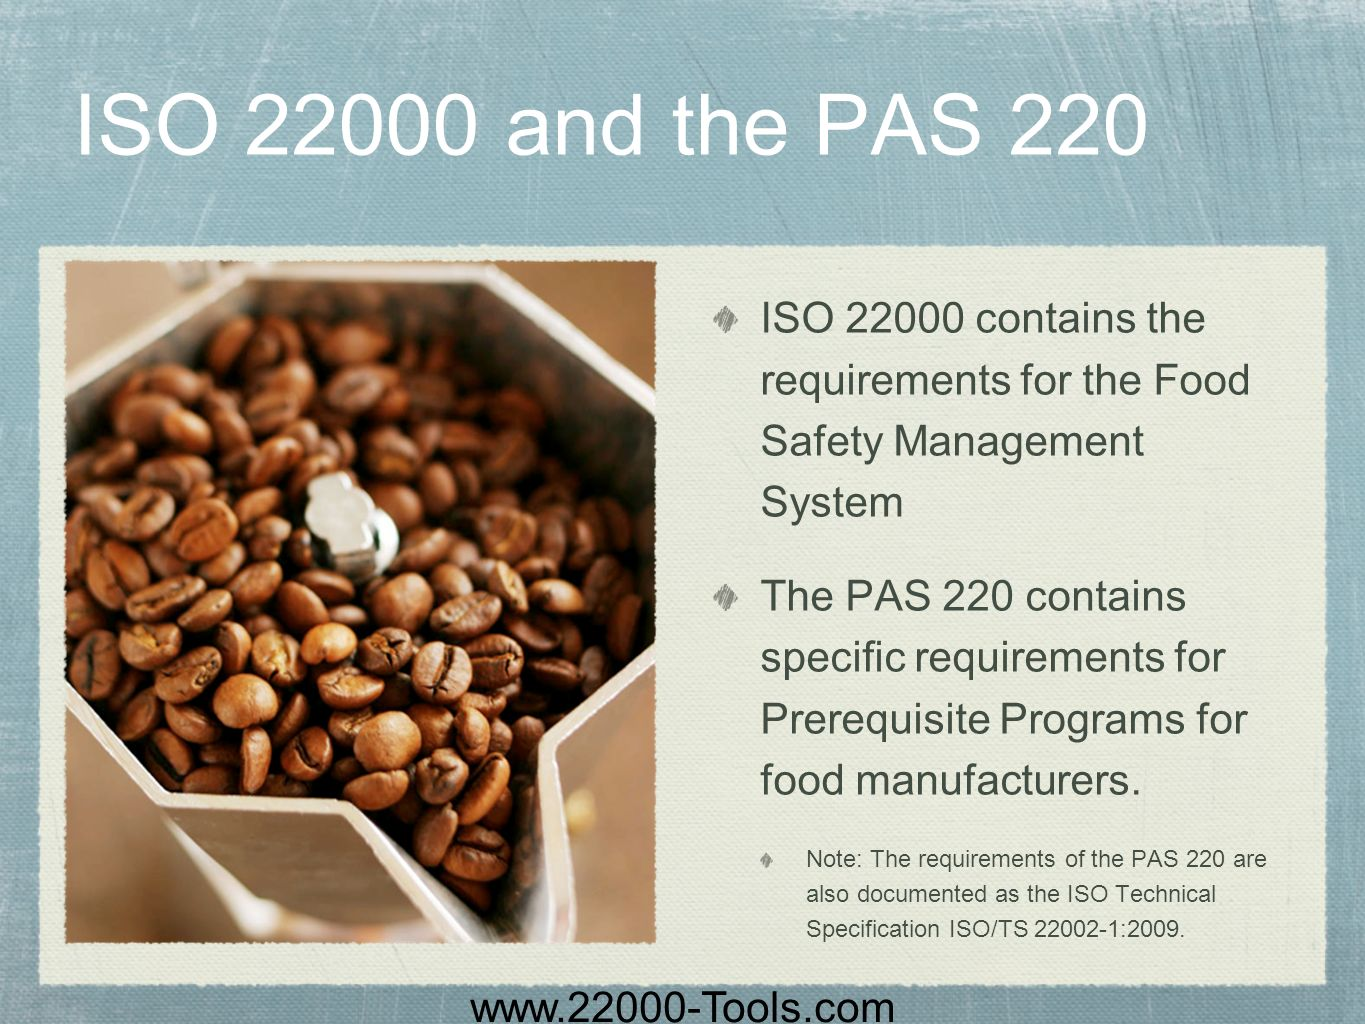 ISO 22000 and the PAS 220ISO 22000 contains the requirements for the Food Safety Management System.